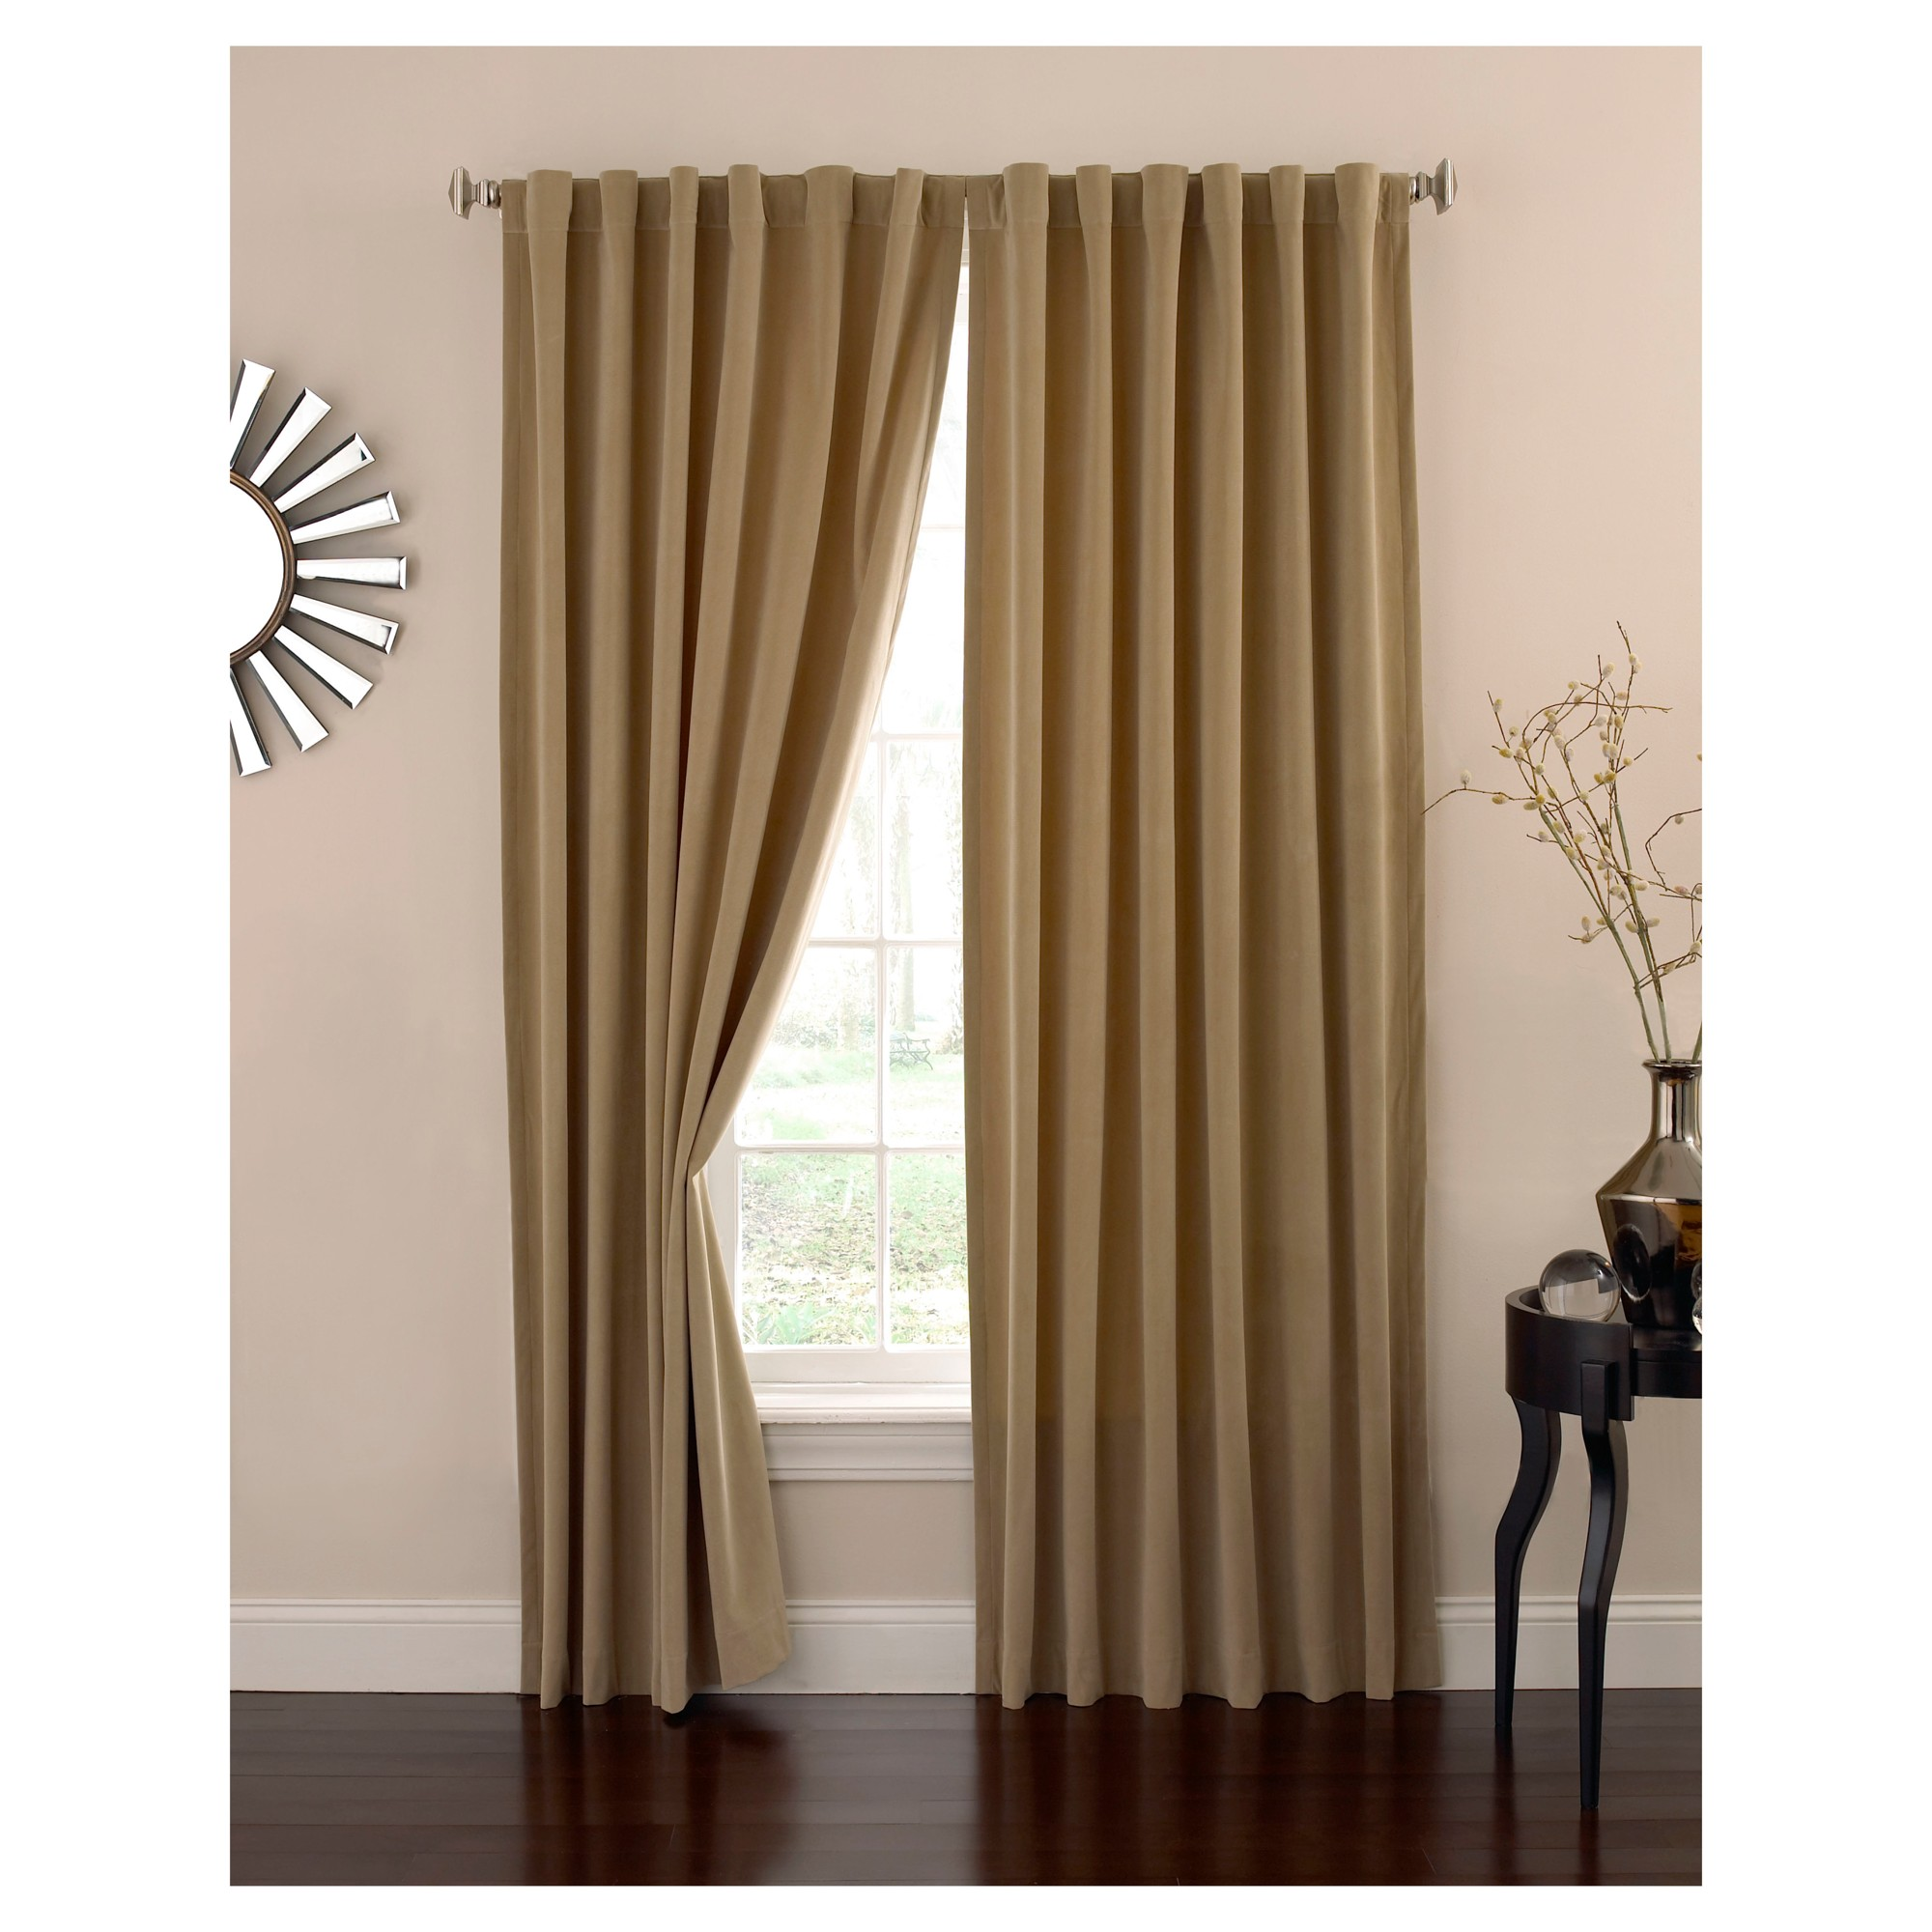 amp bedroom of tan fabrics fez curtains curtain grommet exclusive black fresh blackout grey furnishings and